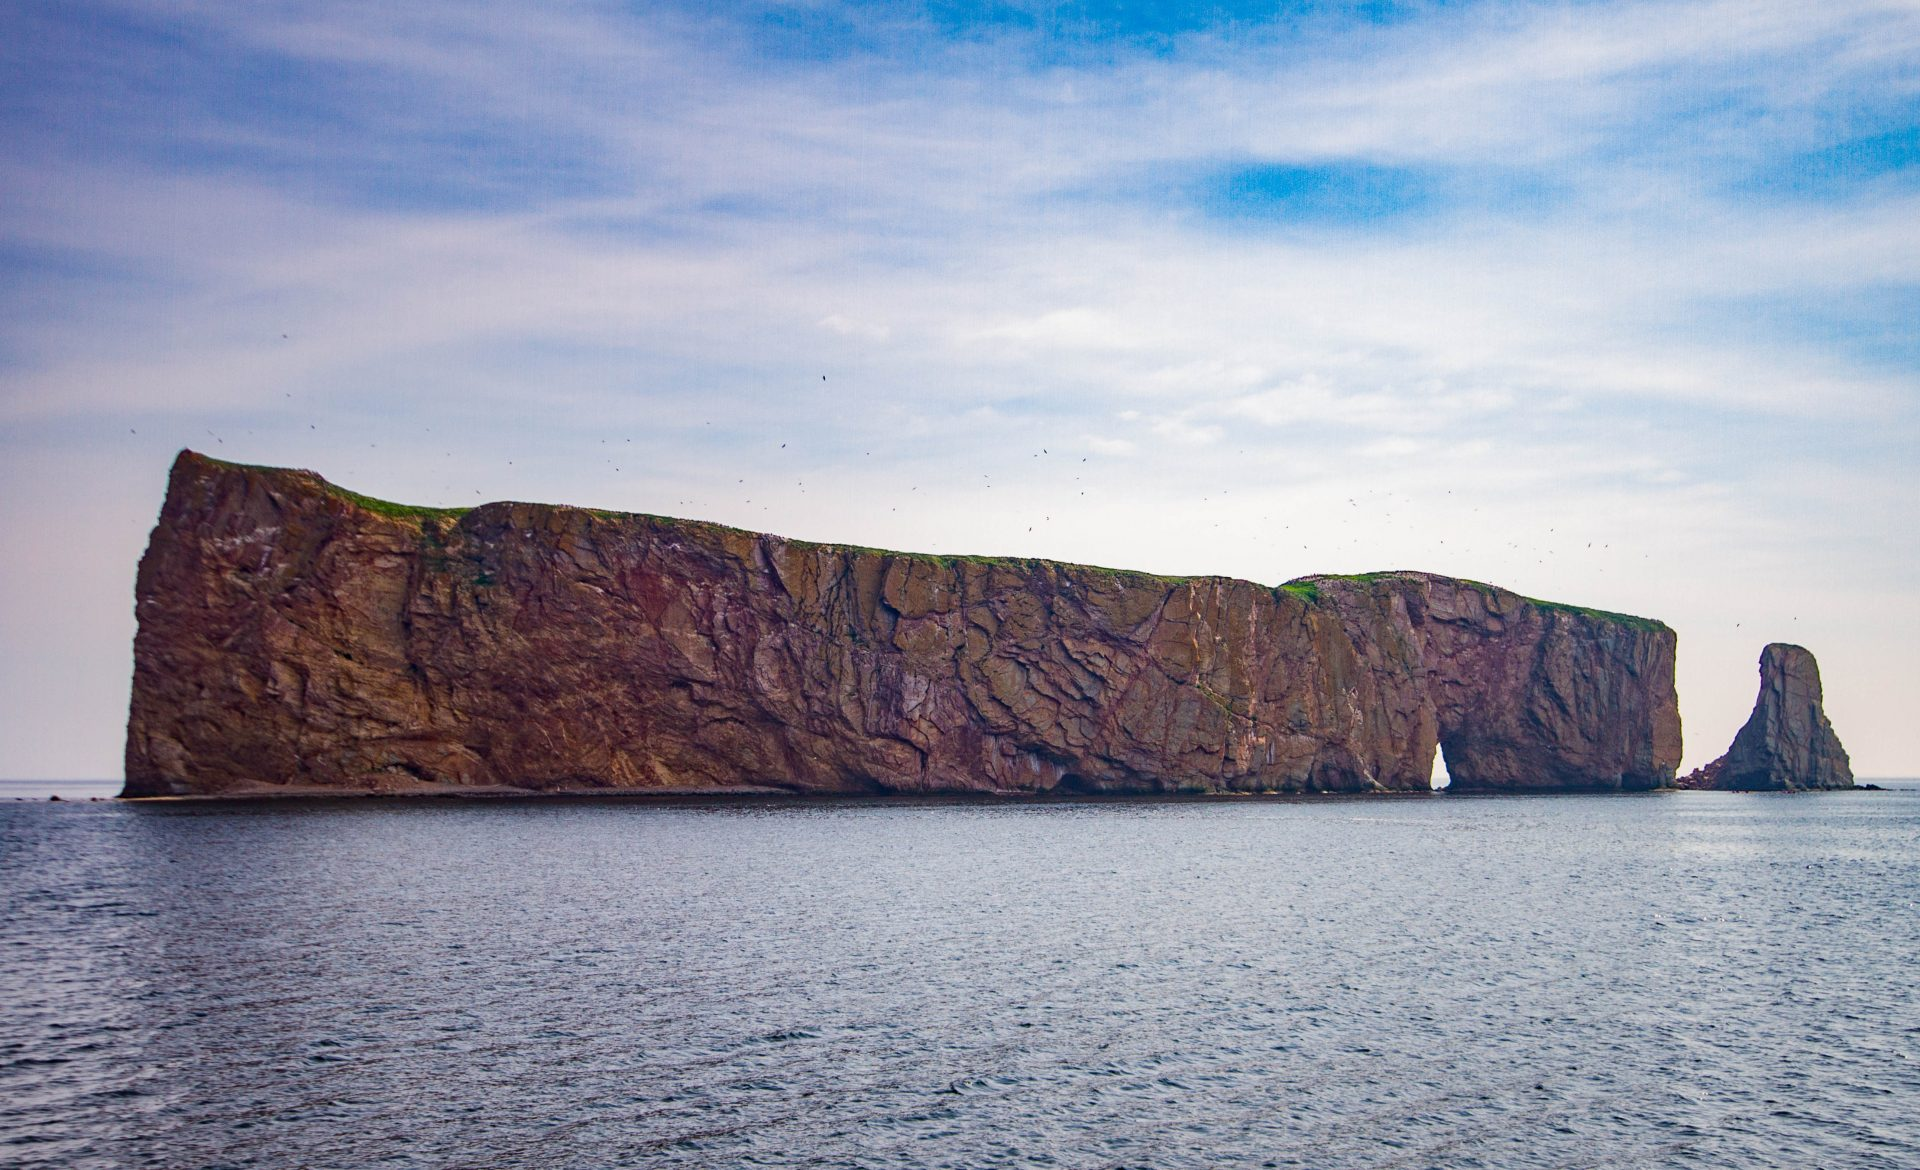 The span of Perce Rock which is located in the National Park of Bonaventure Island and Perce Rock